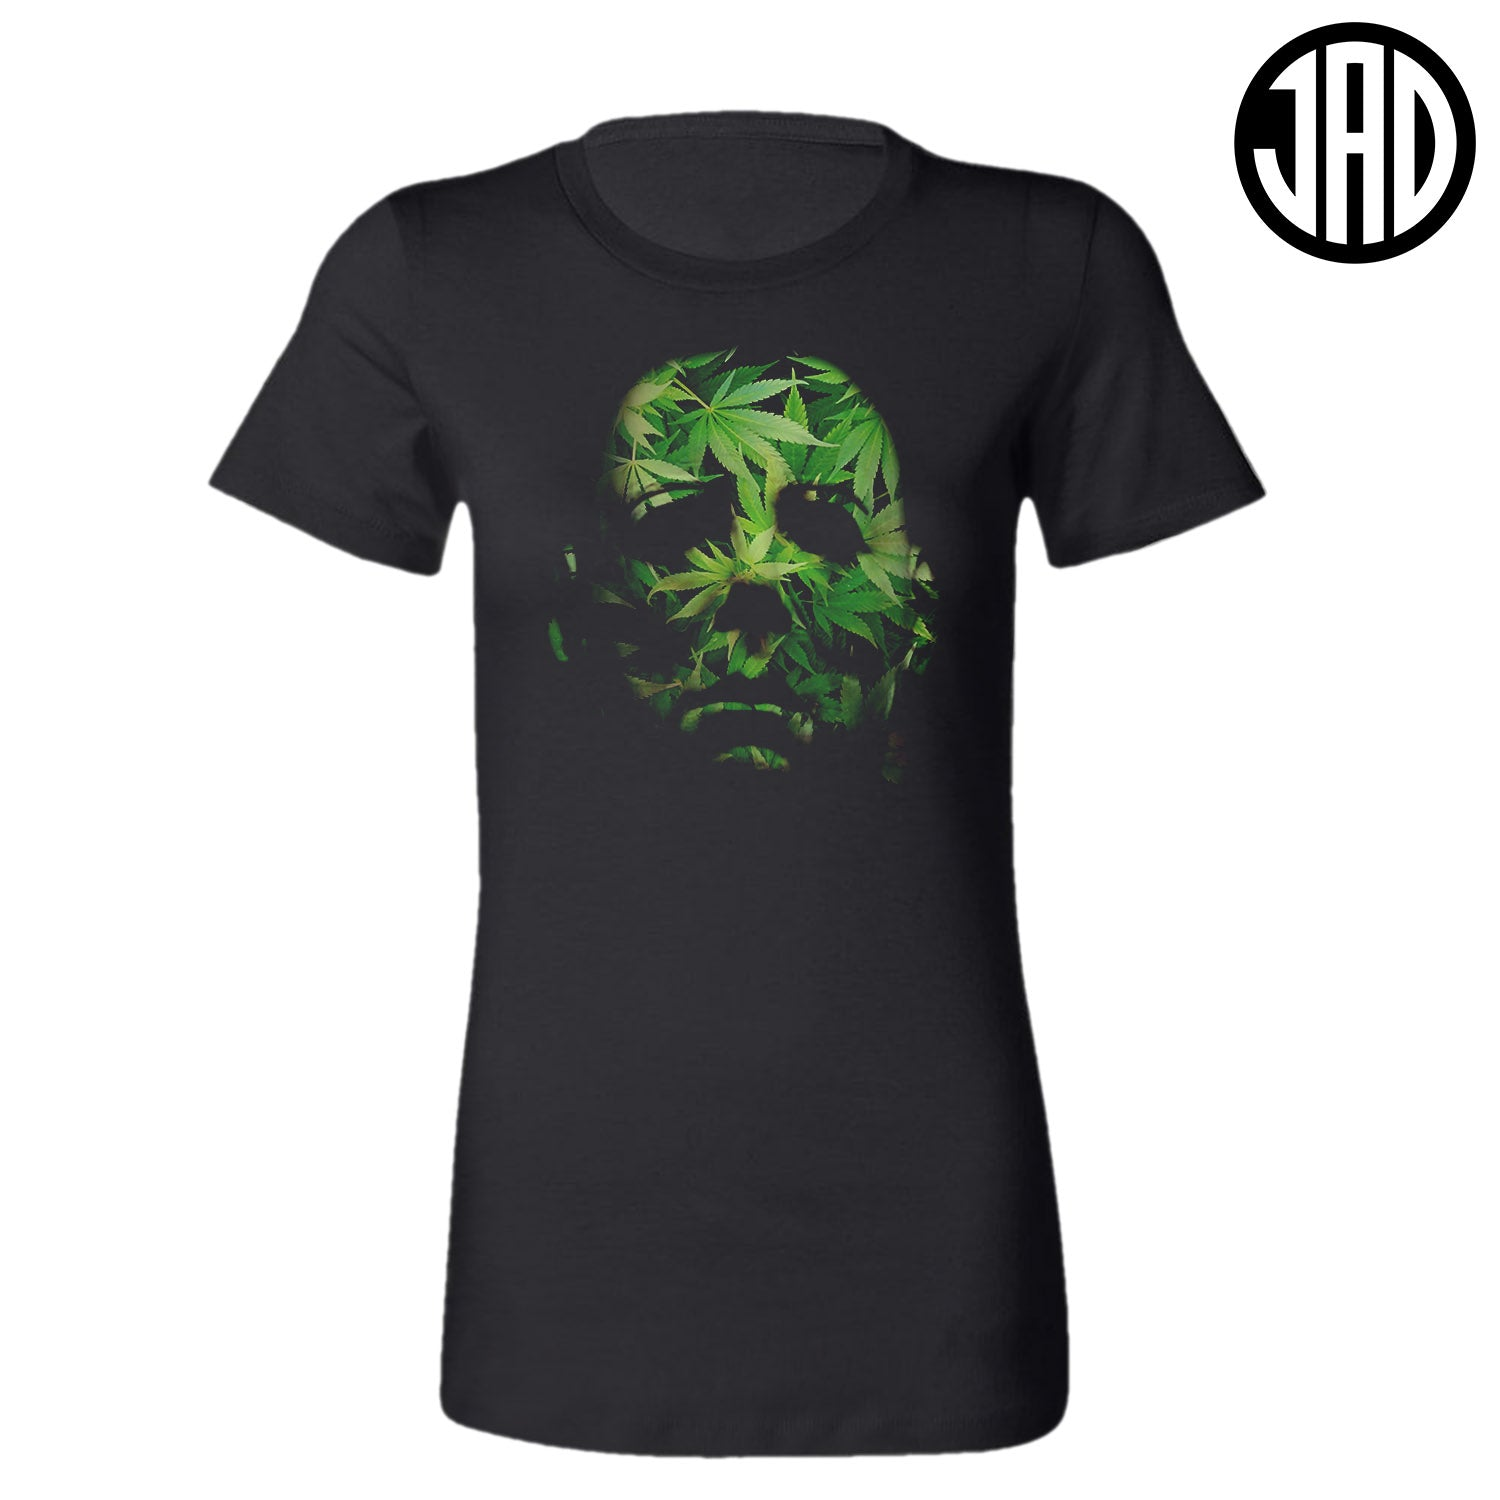 Green Mike - Women's Tee